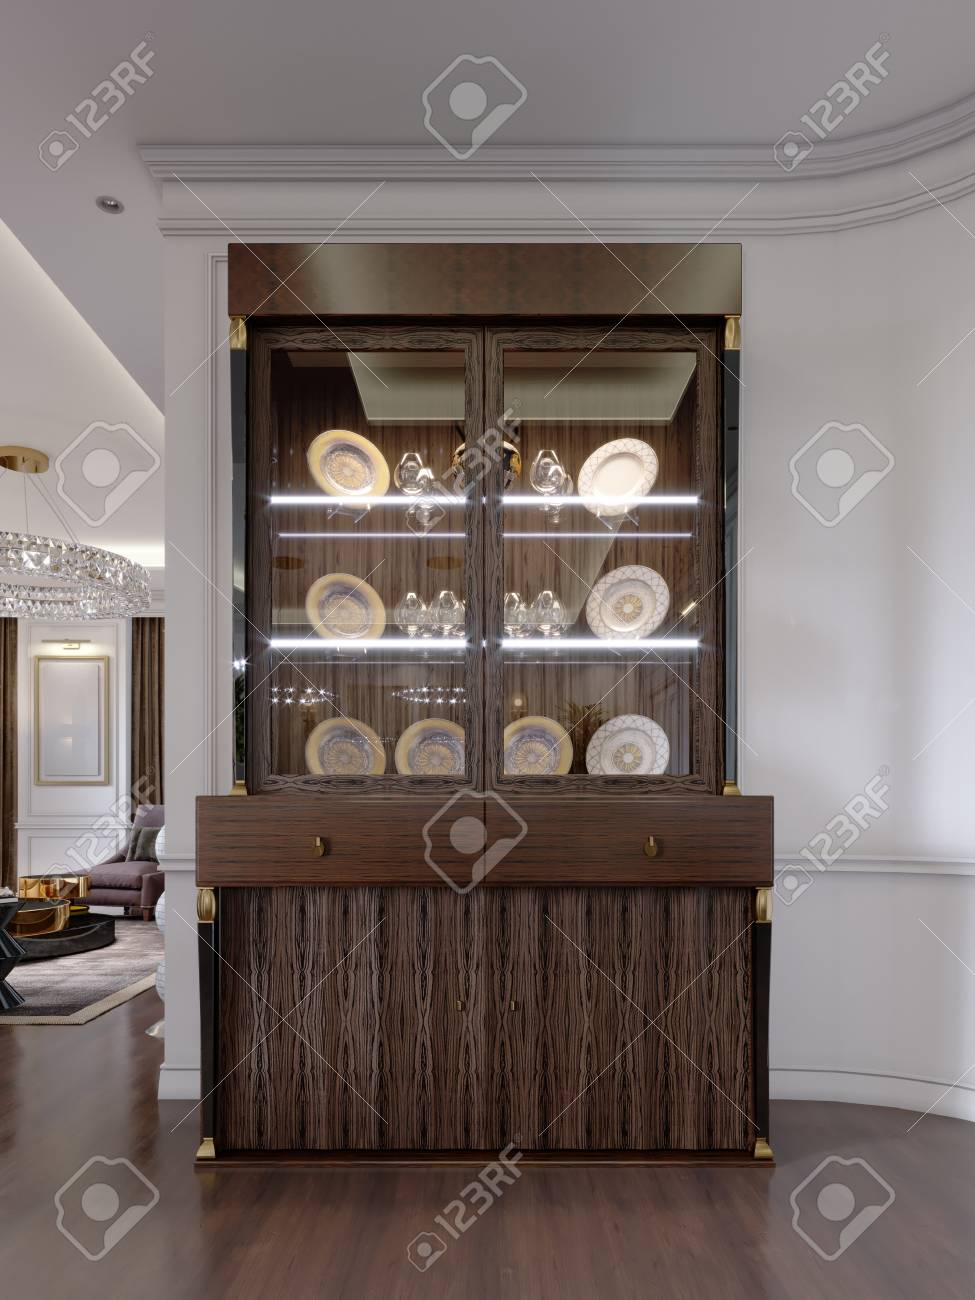 glass cabinet with dishes on the shelves and lighting in a modern